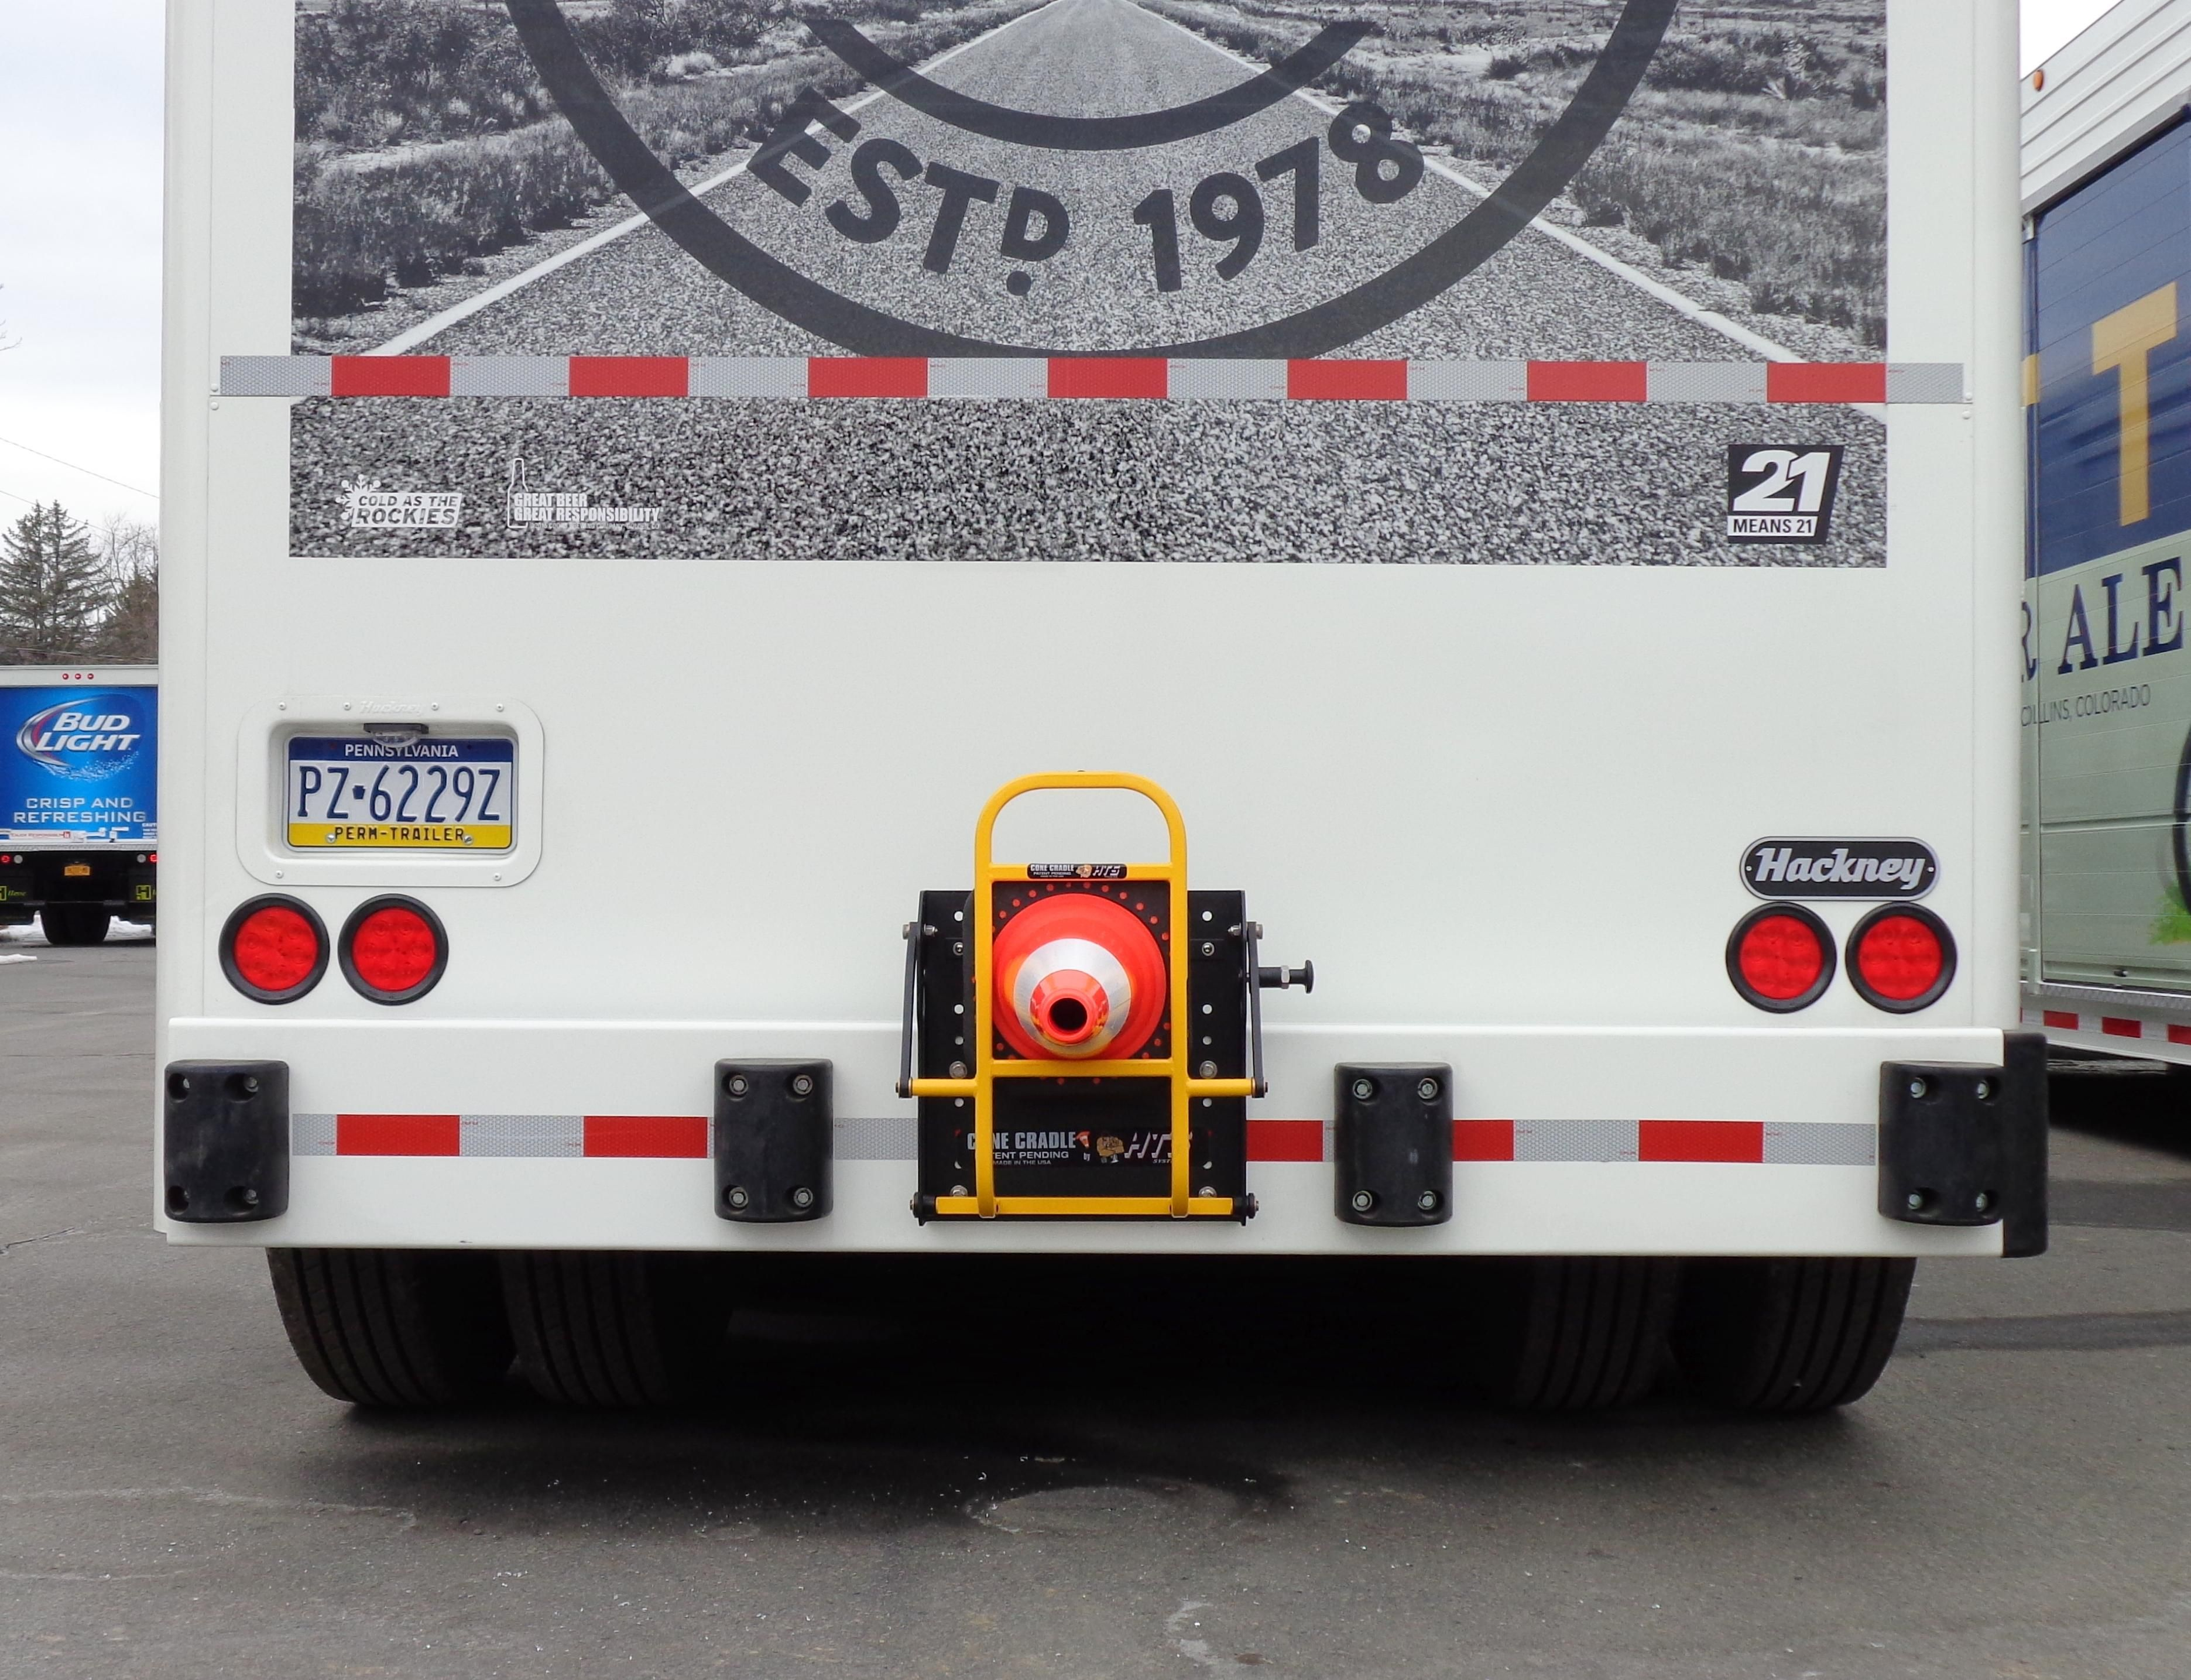 HTS Systems' HTS-CC-18V vertical mount Cone Cradle opens to 90° degrees, an excellent safety application for side-loader beverage trucks. Deploy and stow traffic safety cones in just seconds! Create a safe work perimeter when making deliveries safely, quickly and easily.